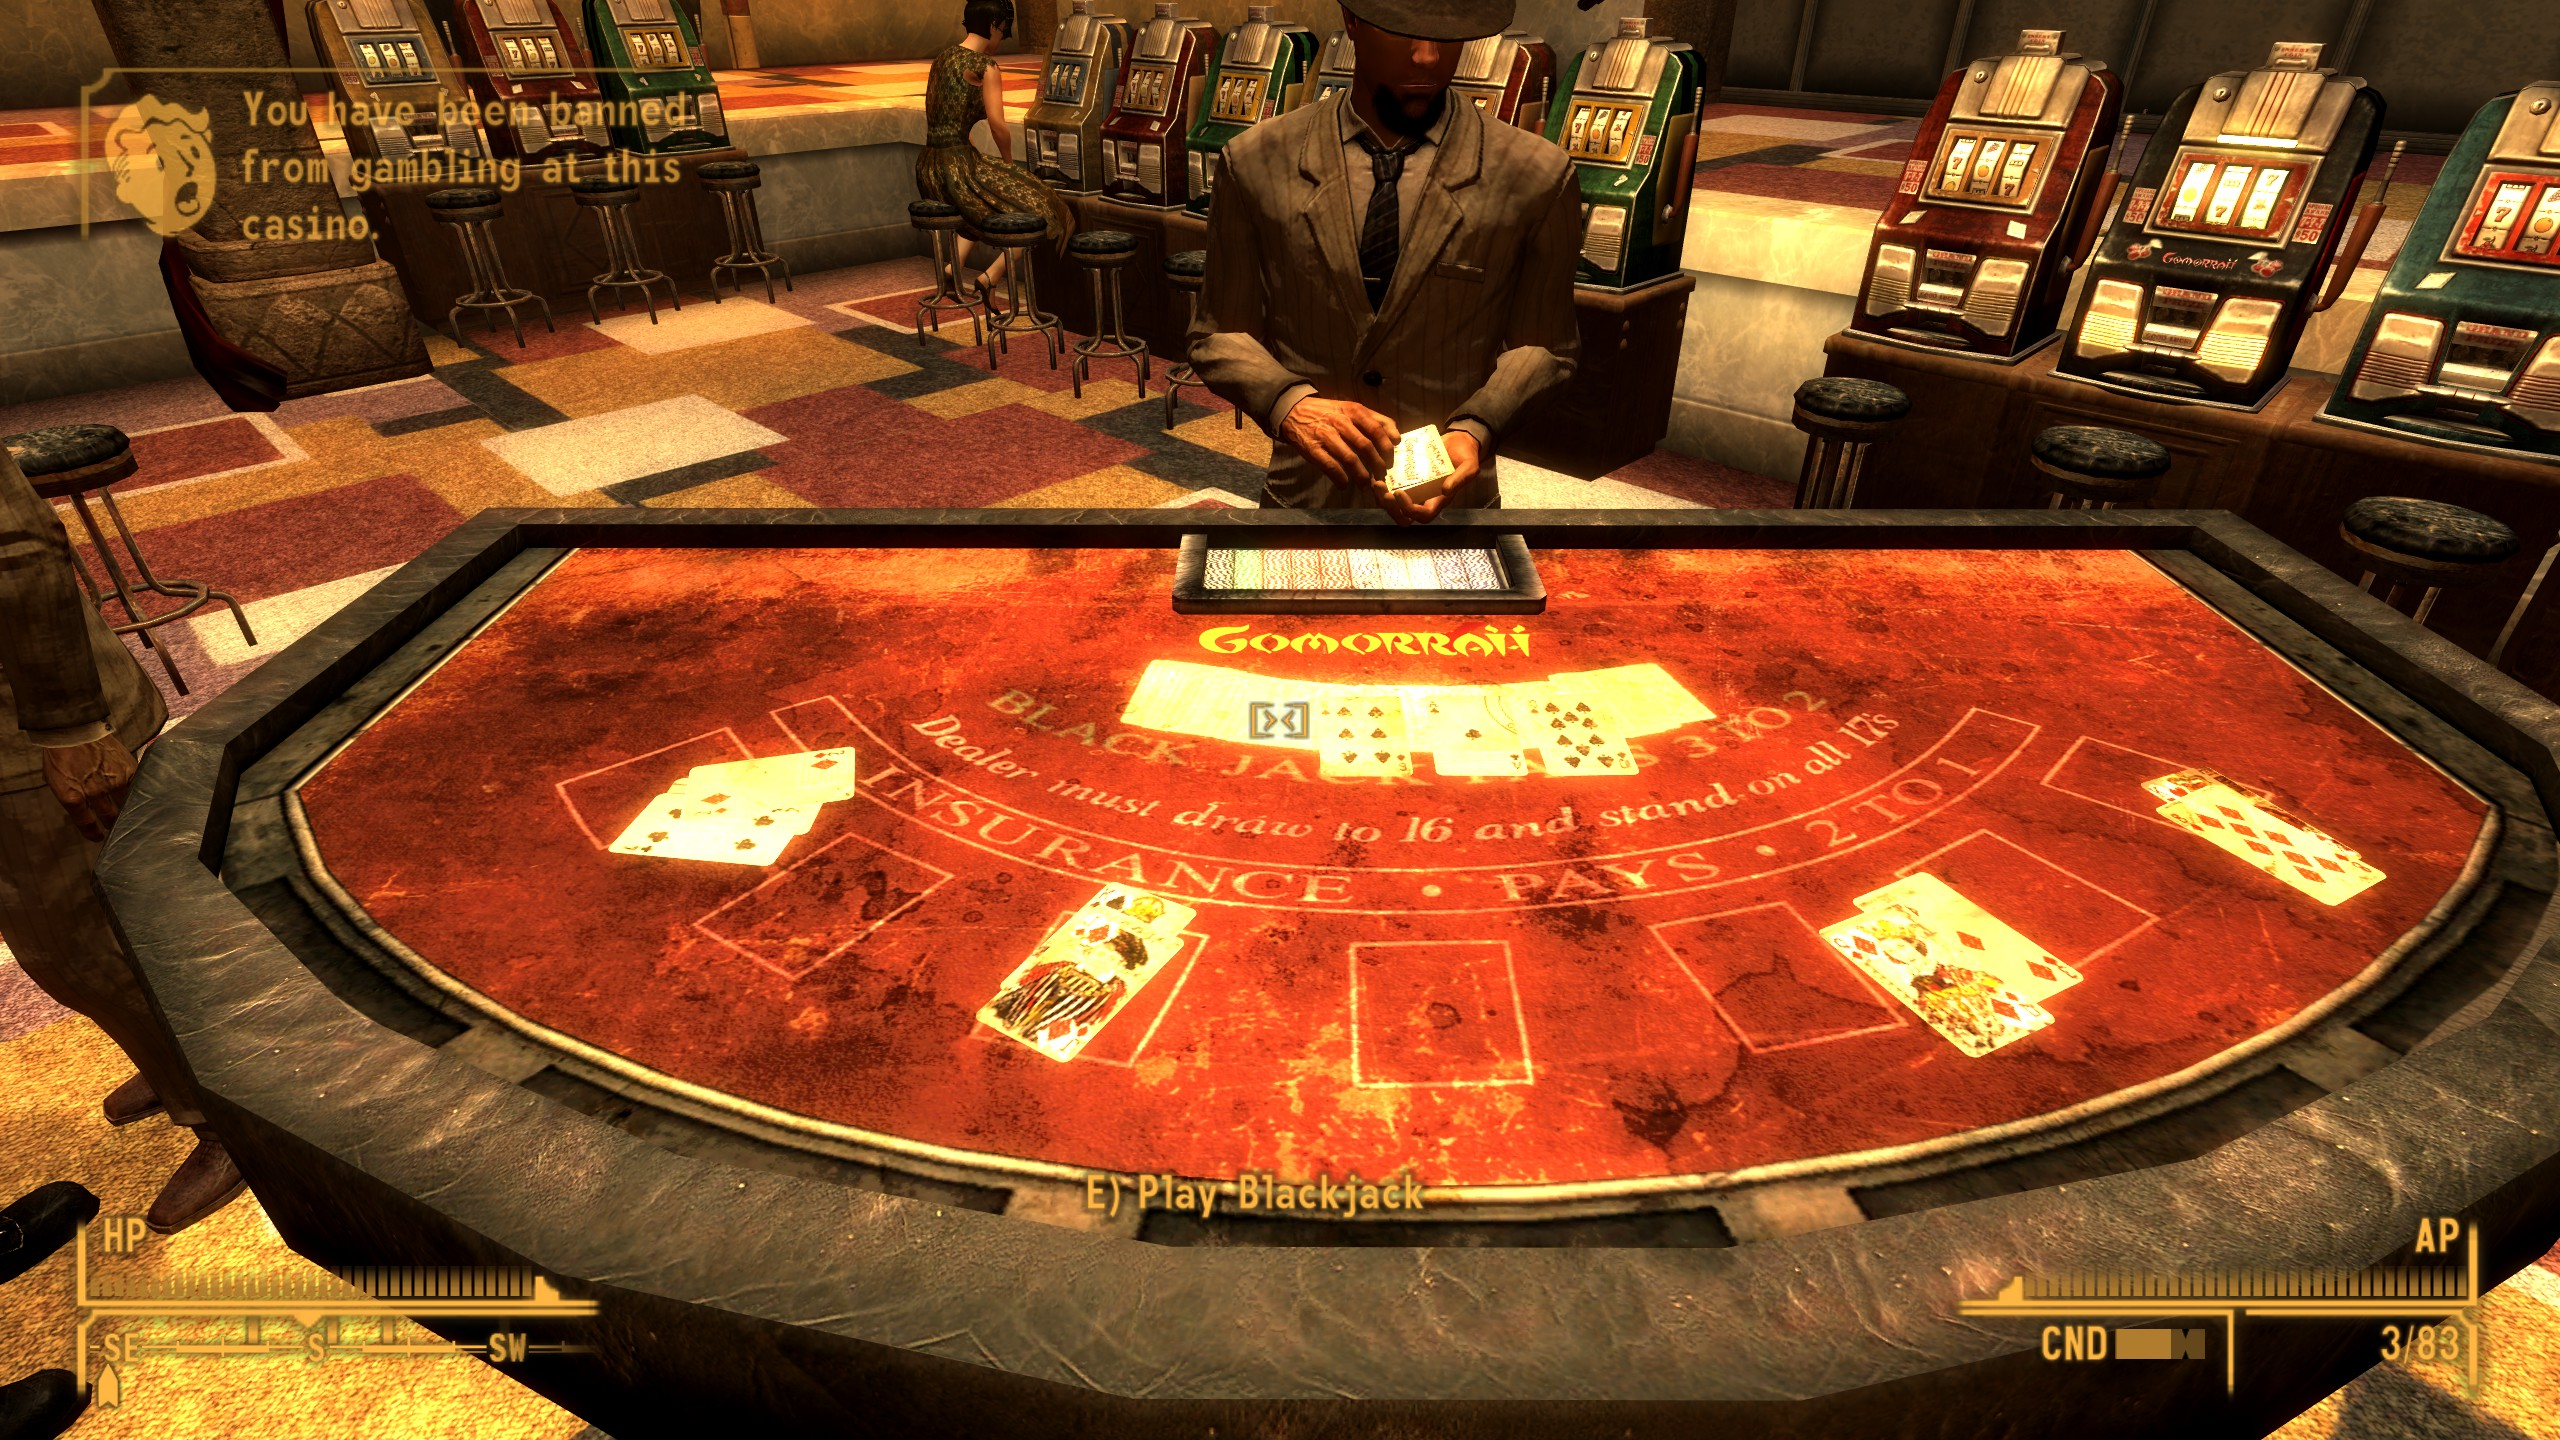 FALLOUT NEW VEGAS KICKED OUT OF CASINO